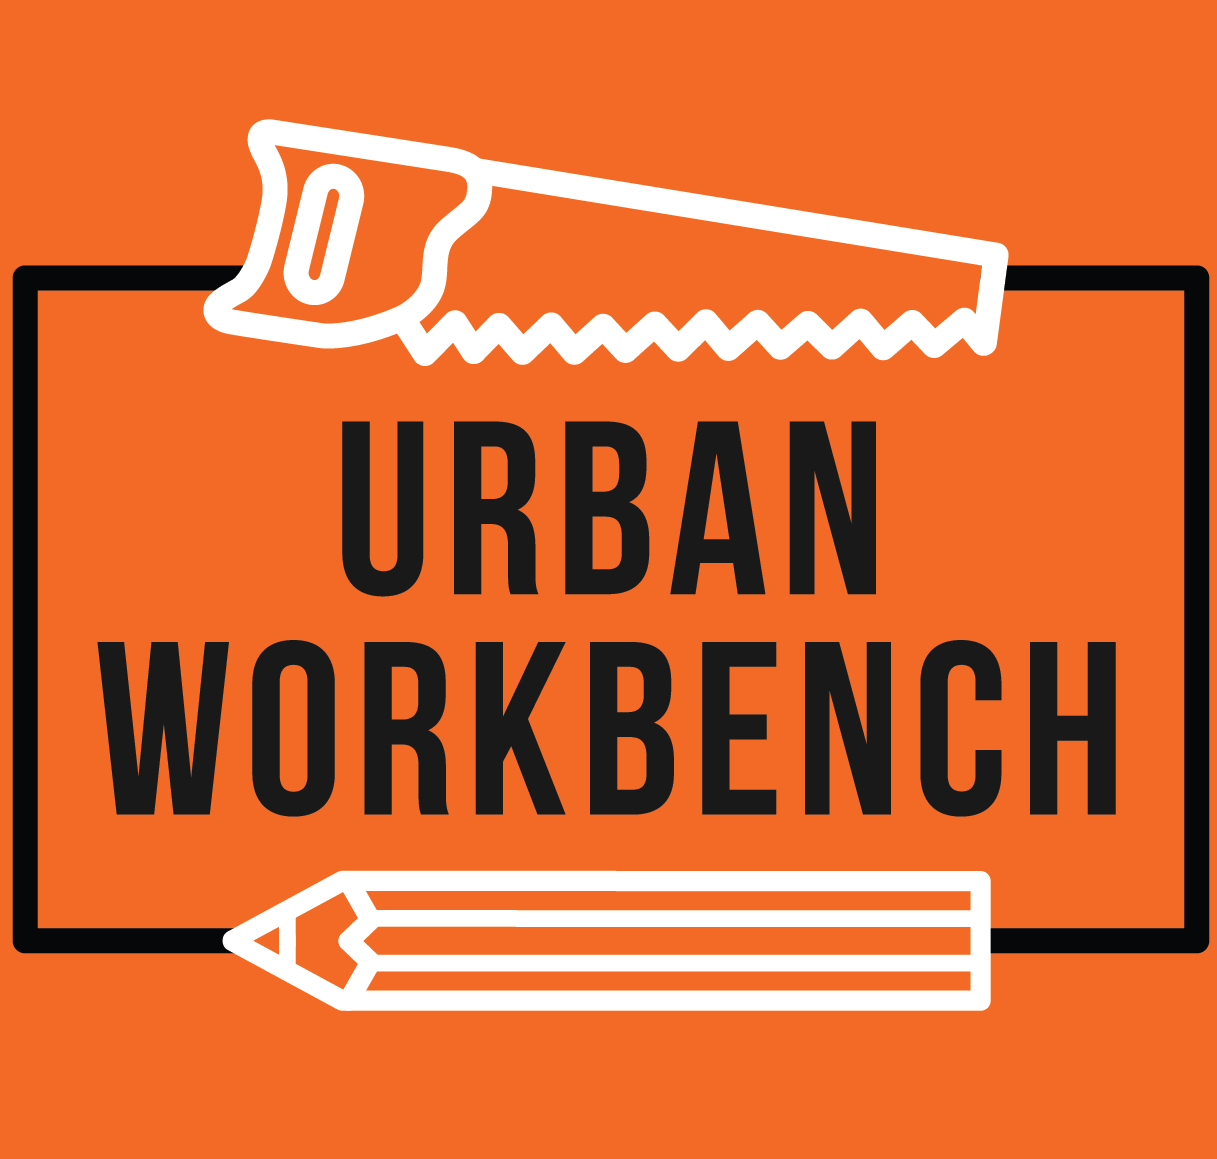 Urban Workbench – a We Make Places Project